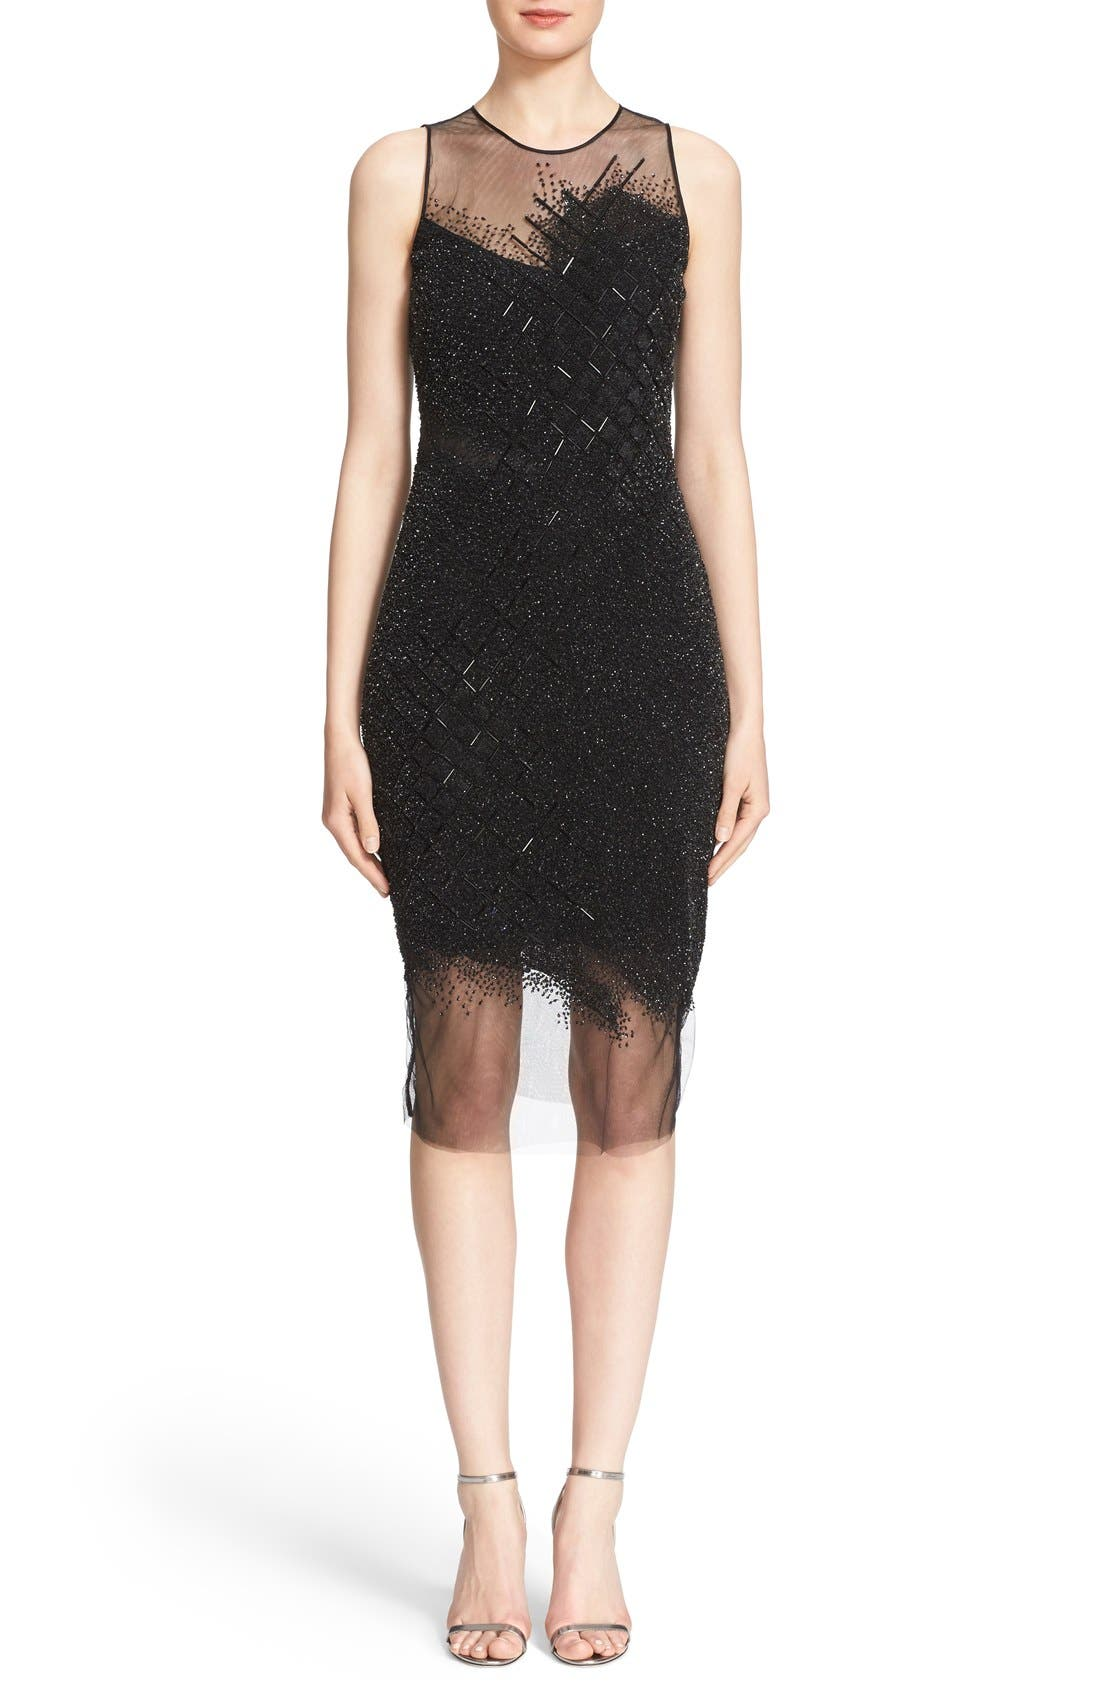 PAMELLA ROLAND Sequin Grid Cocktail Dress in Black